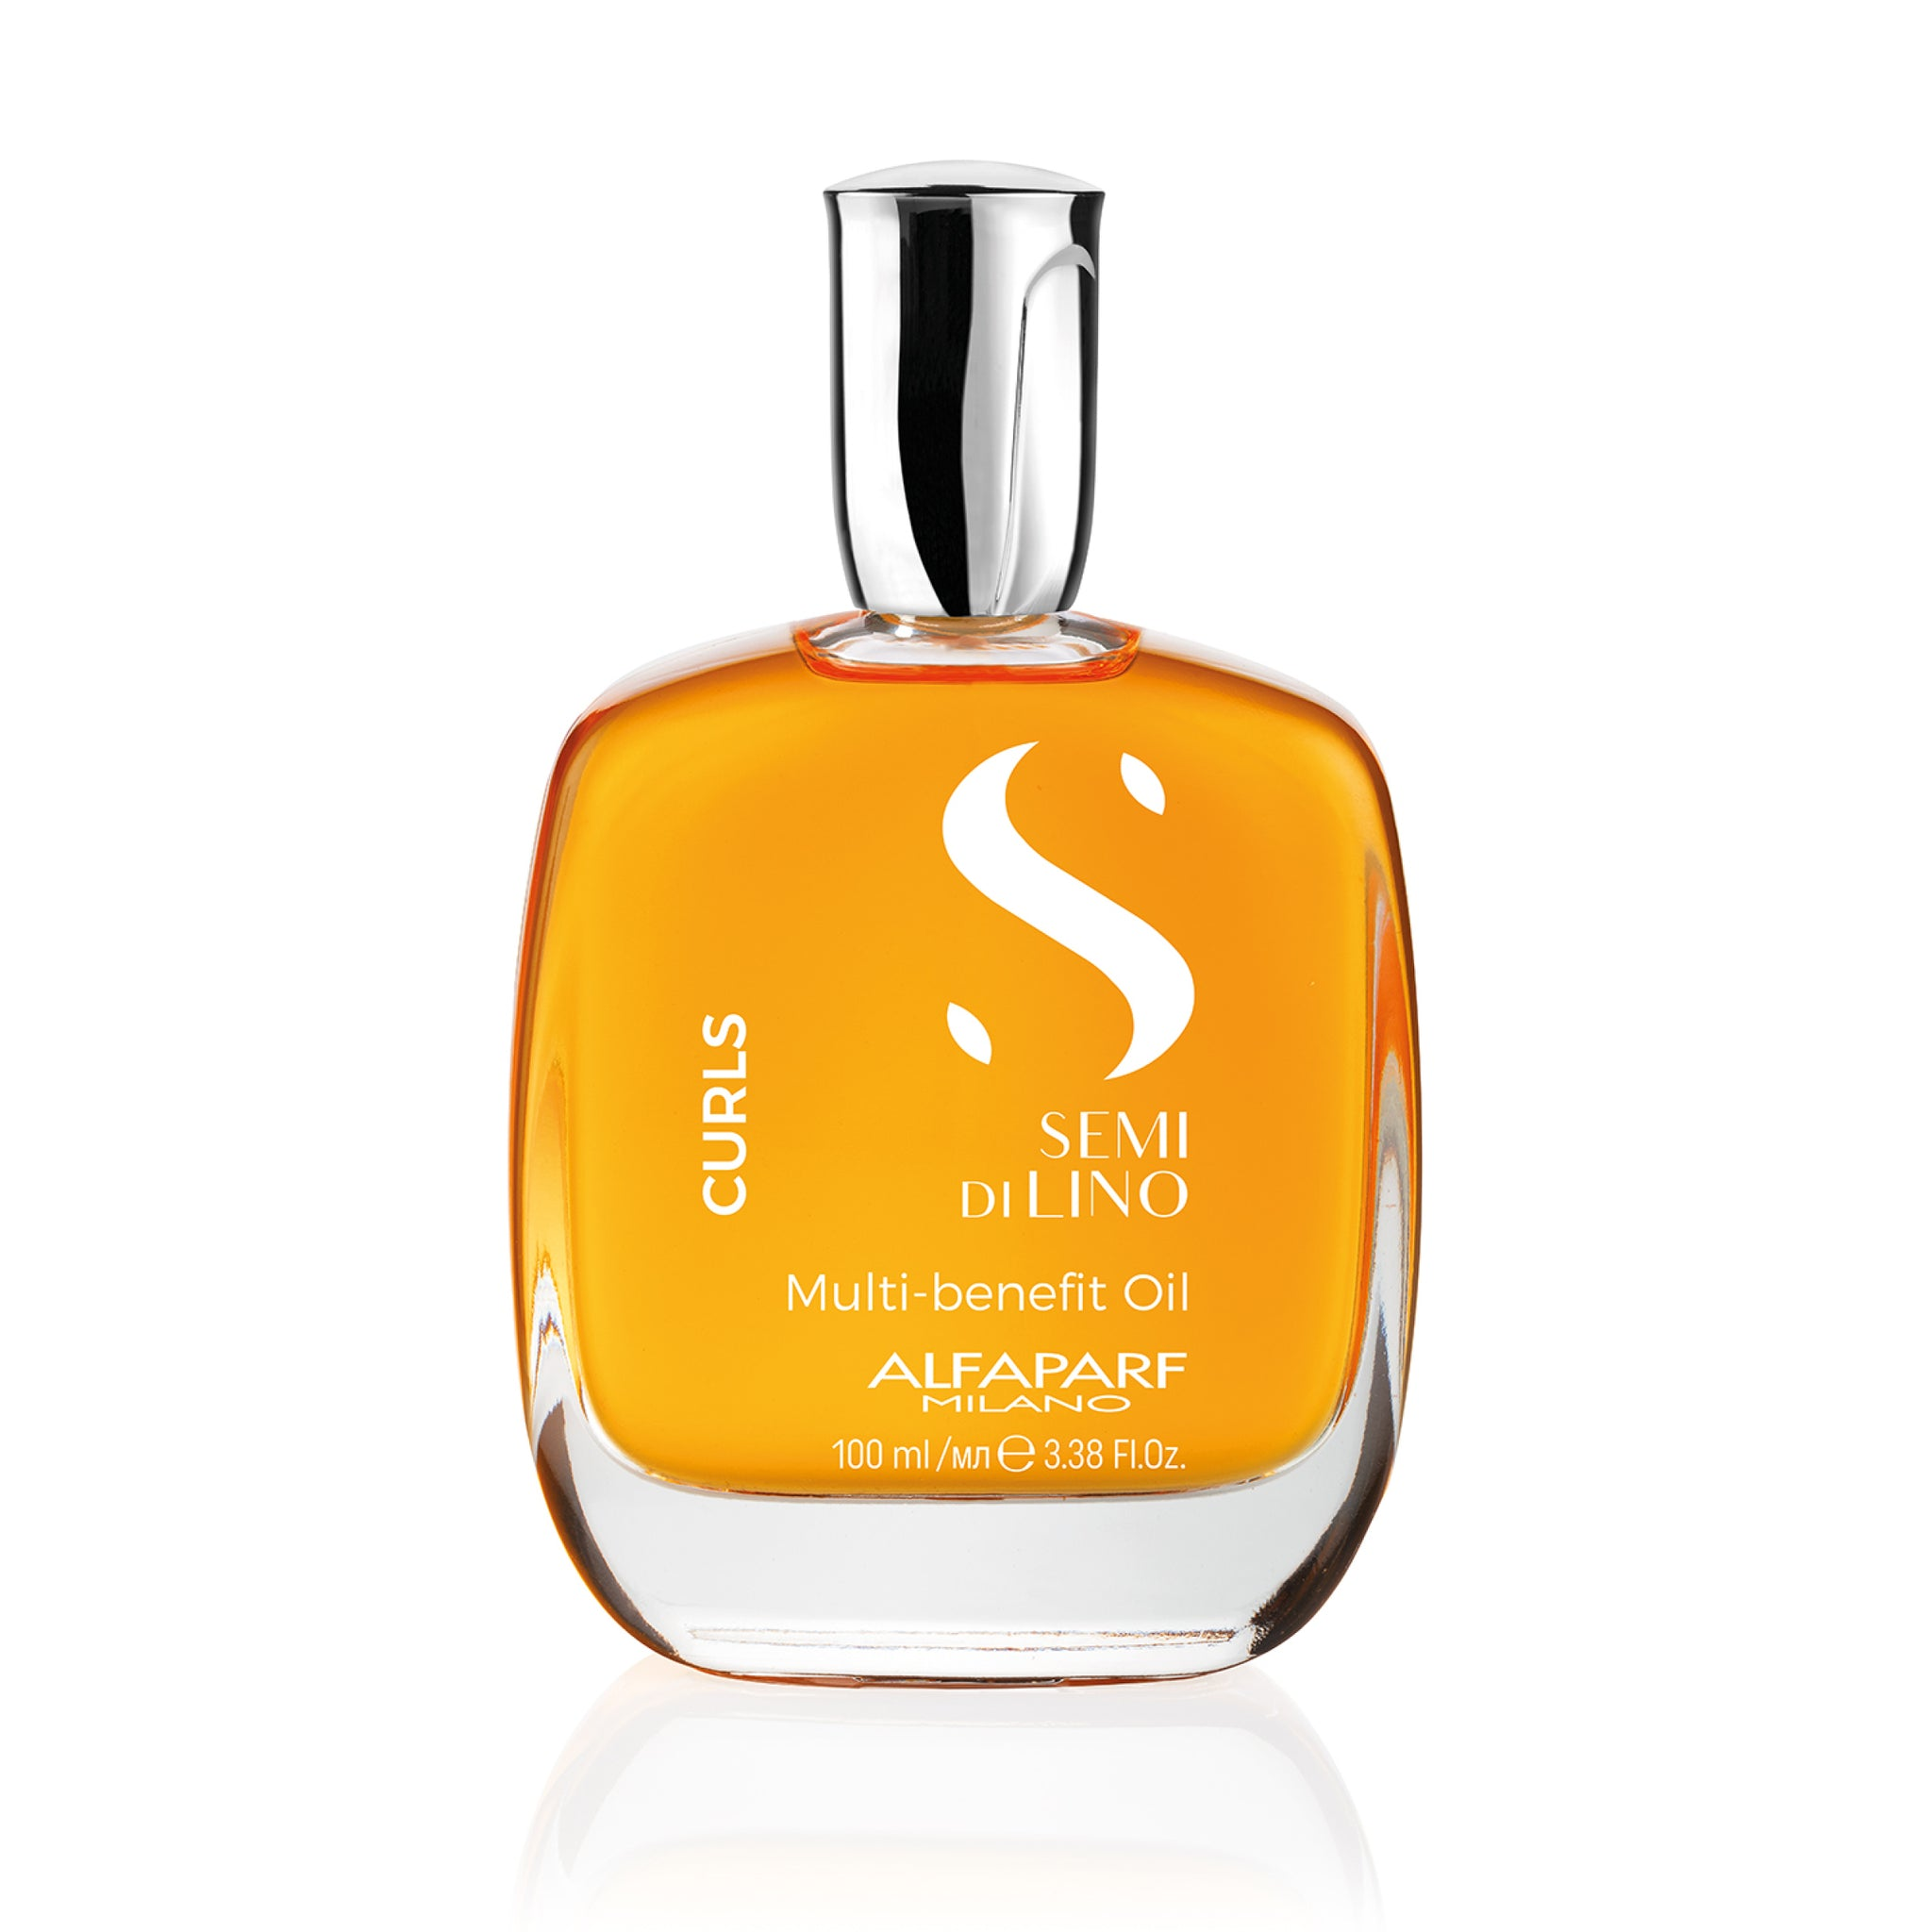 ALFAPARF Milano Semi Di Lino Curls Multi-Benefit Oil